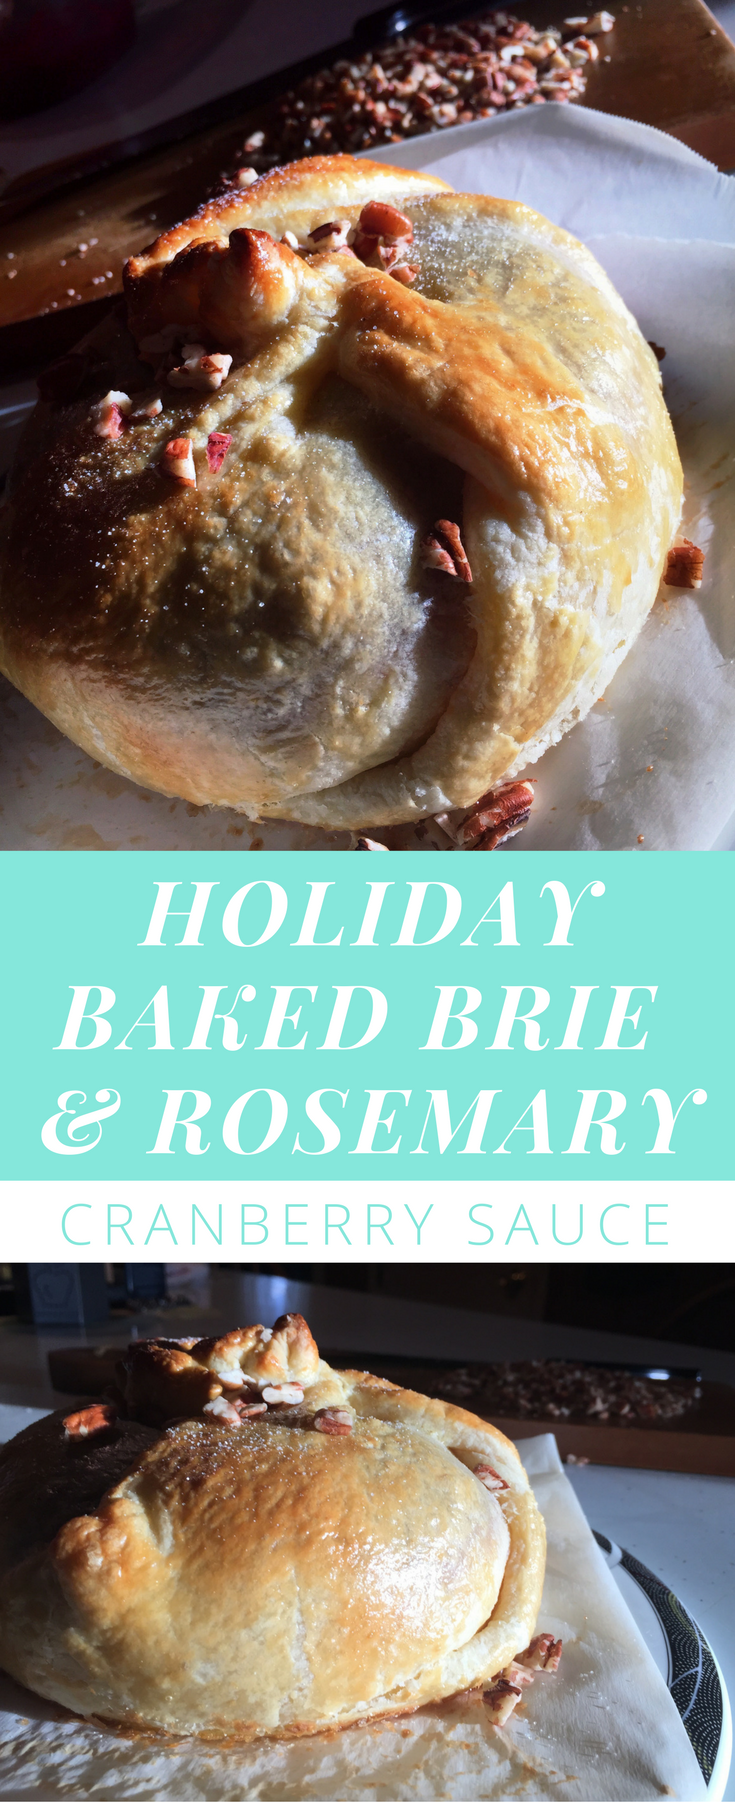 holiday-baked-brie-with-rosemary-infused-cranberry-sauce